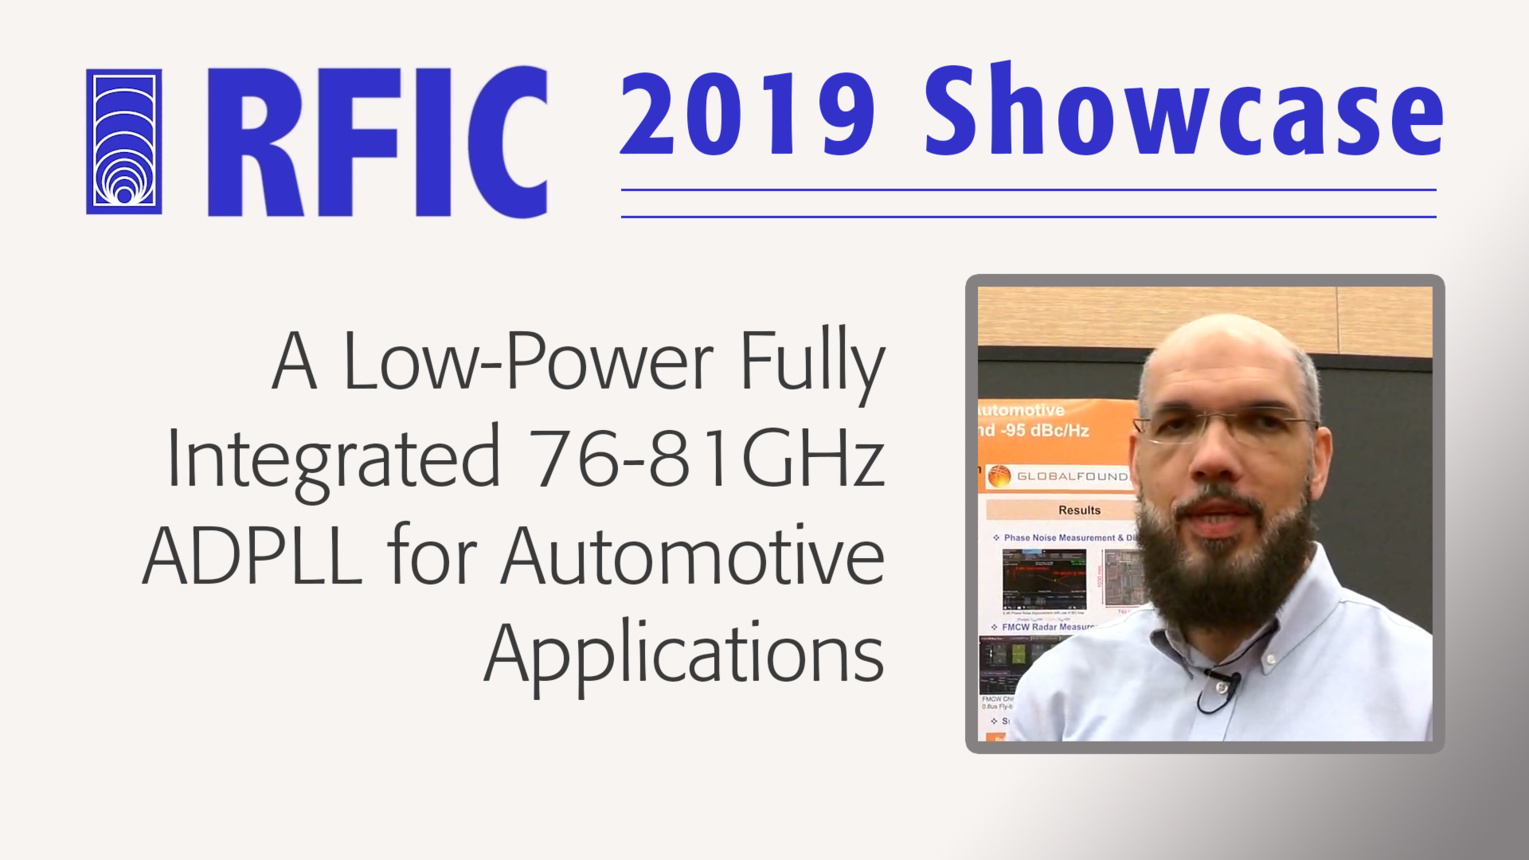 A Low-Power Fully Integrated 76-81GHz ADPLL for Automotive Applications - Ahmed R. Fridi - RFIC 2019 Showcase